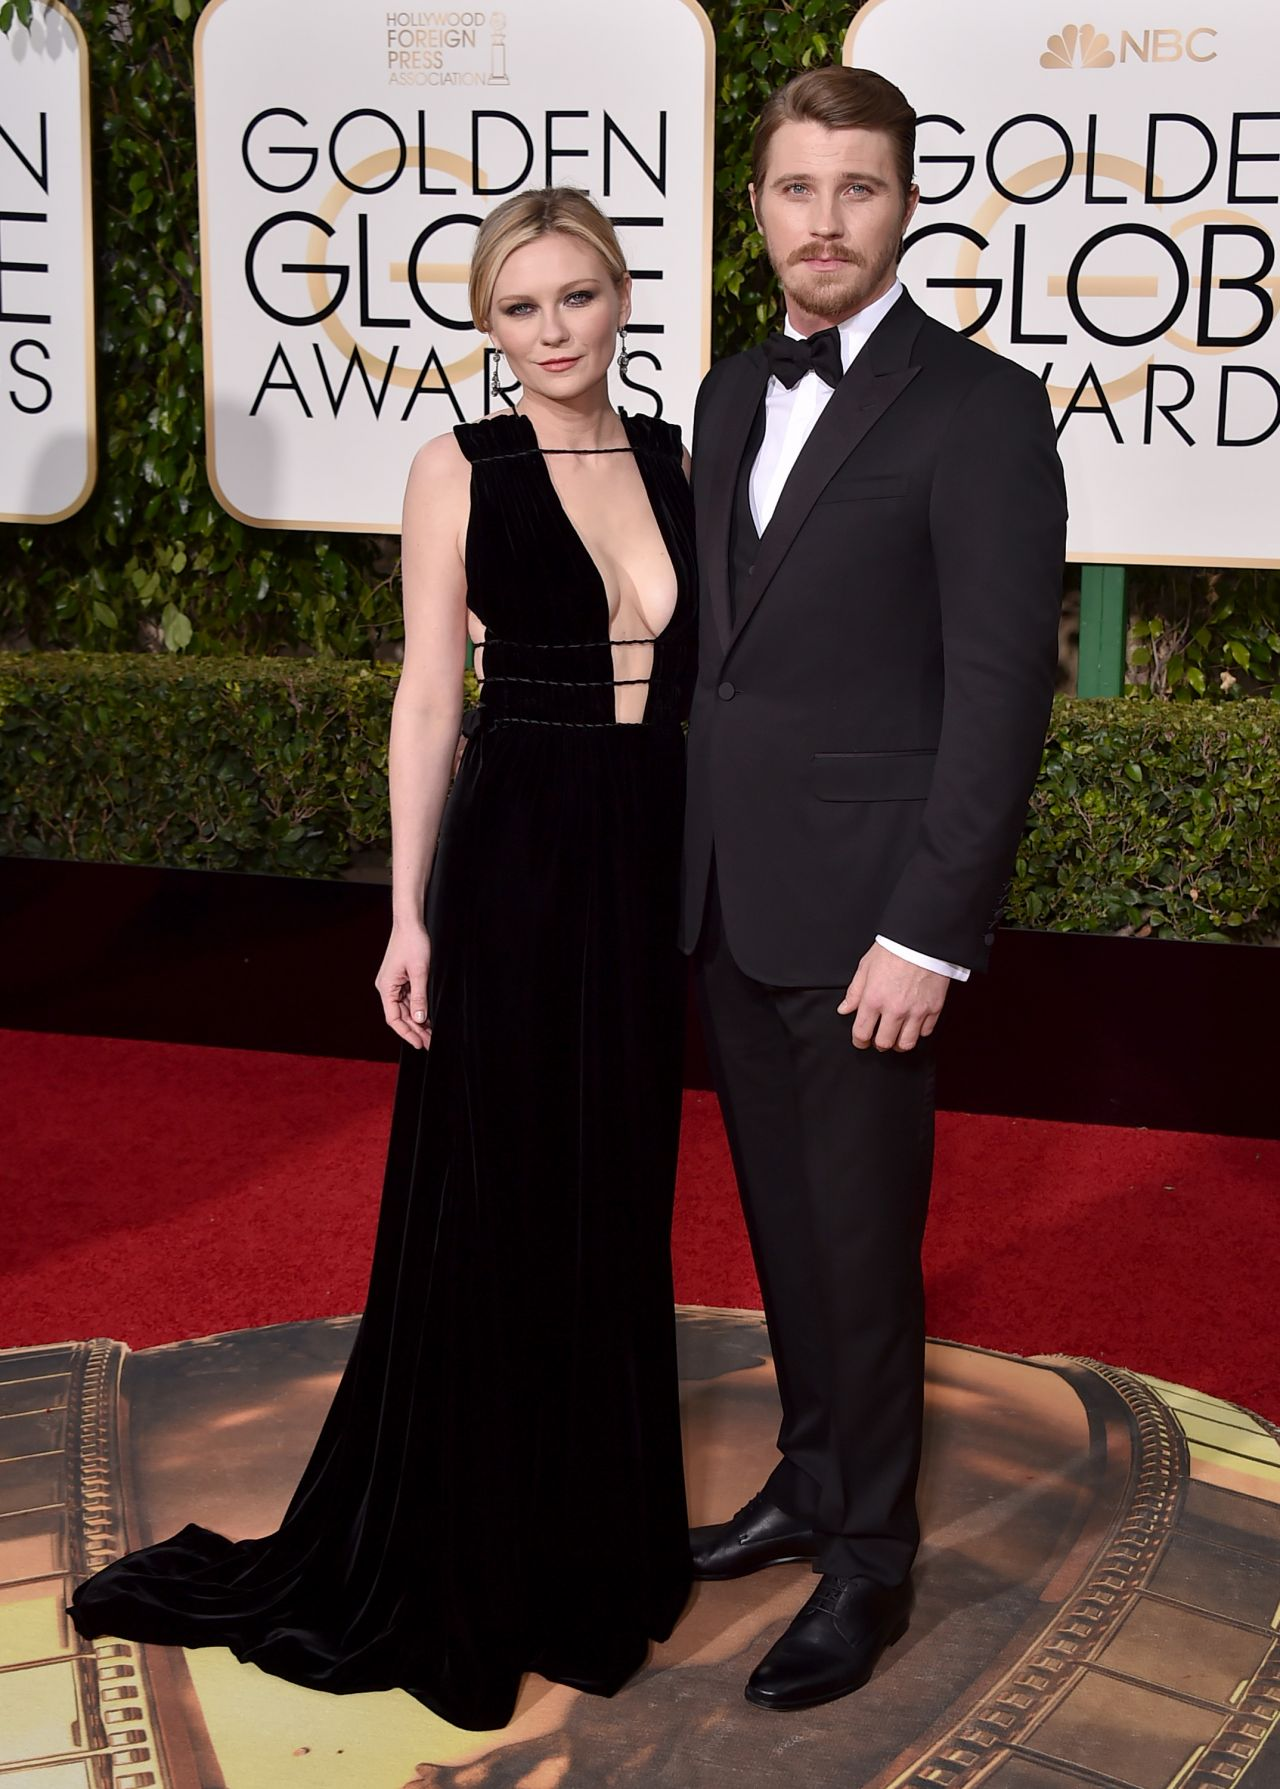 kirsten-dunst-2016-golden-globe-awards-in-beverly-hills-4